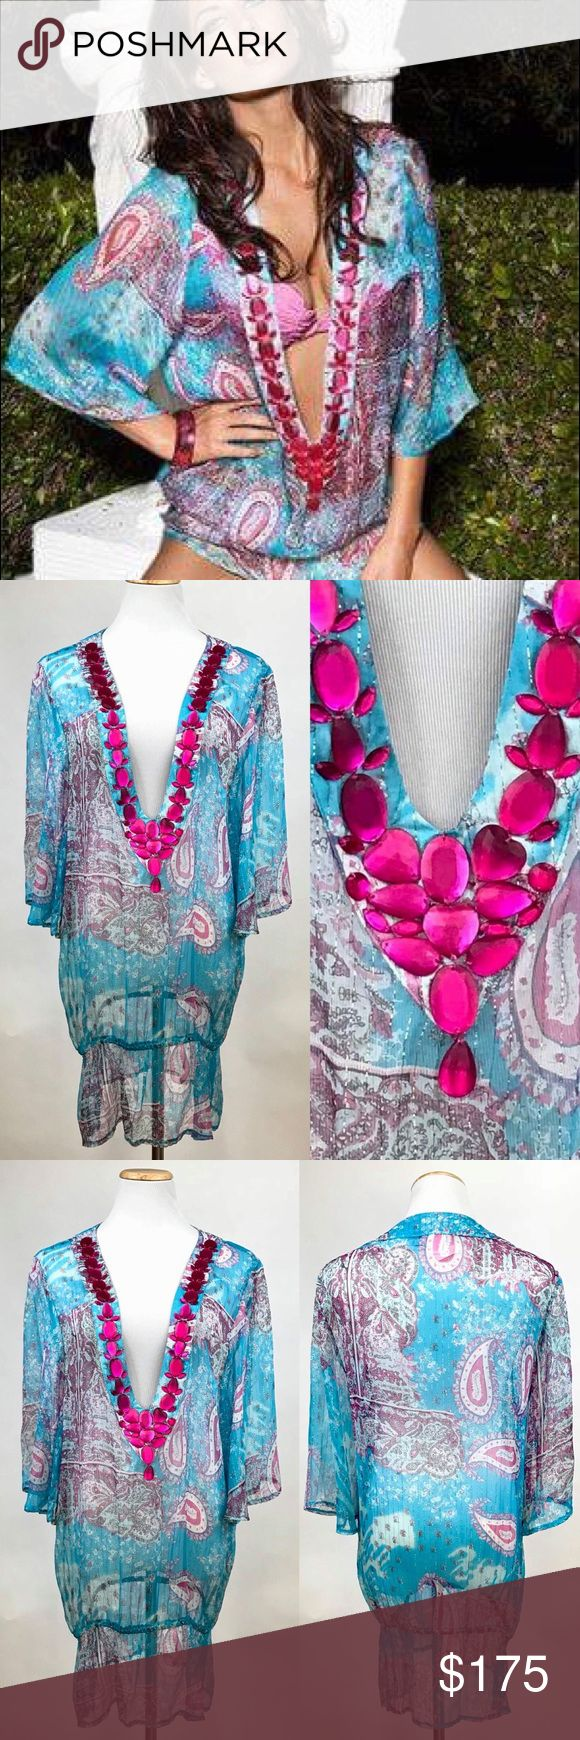 New Beach Bunny Bejeweled Silk Tunic Coverup Dress Beach Bunny 'Viva La Vida' cover up tunic. Teal blue and magenta floral/paisley print. Metallic gold threading. Plunging, bejeweled neckline. 3/4?sleeves. Wear as coverup, tunic or dress. 100% Silk. Hand washable.  Size: Large.  New without tags. Beach Bunny Swim Coverups